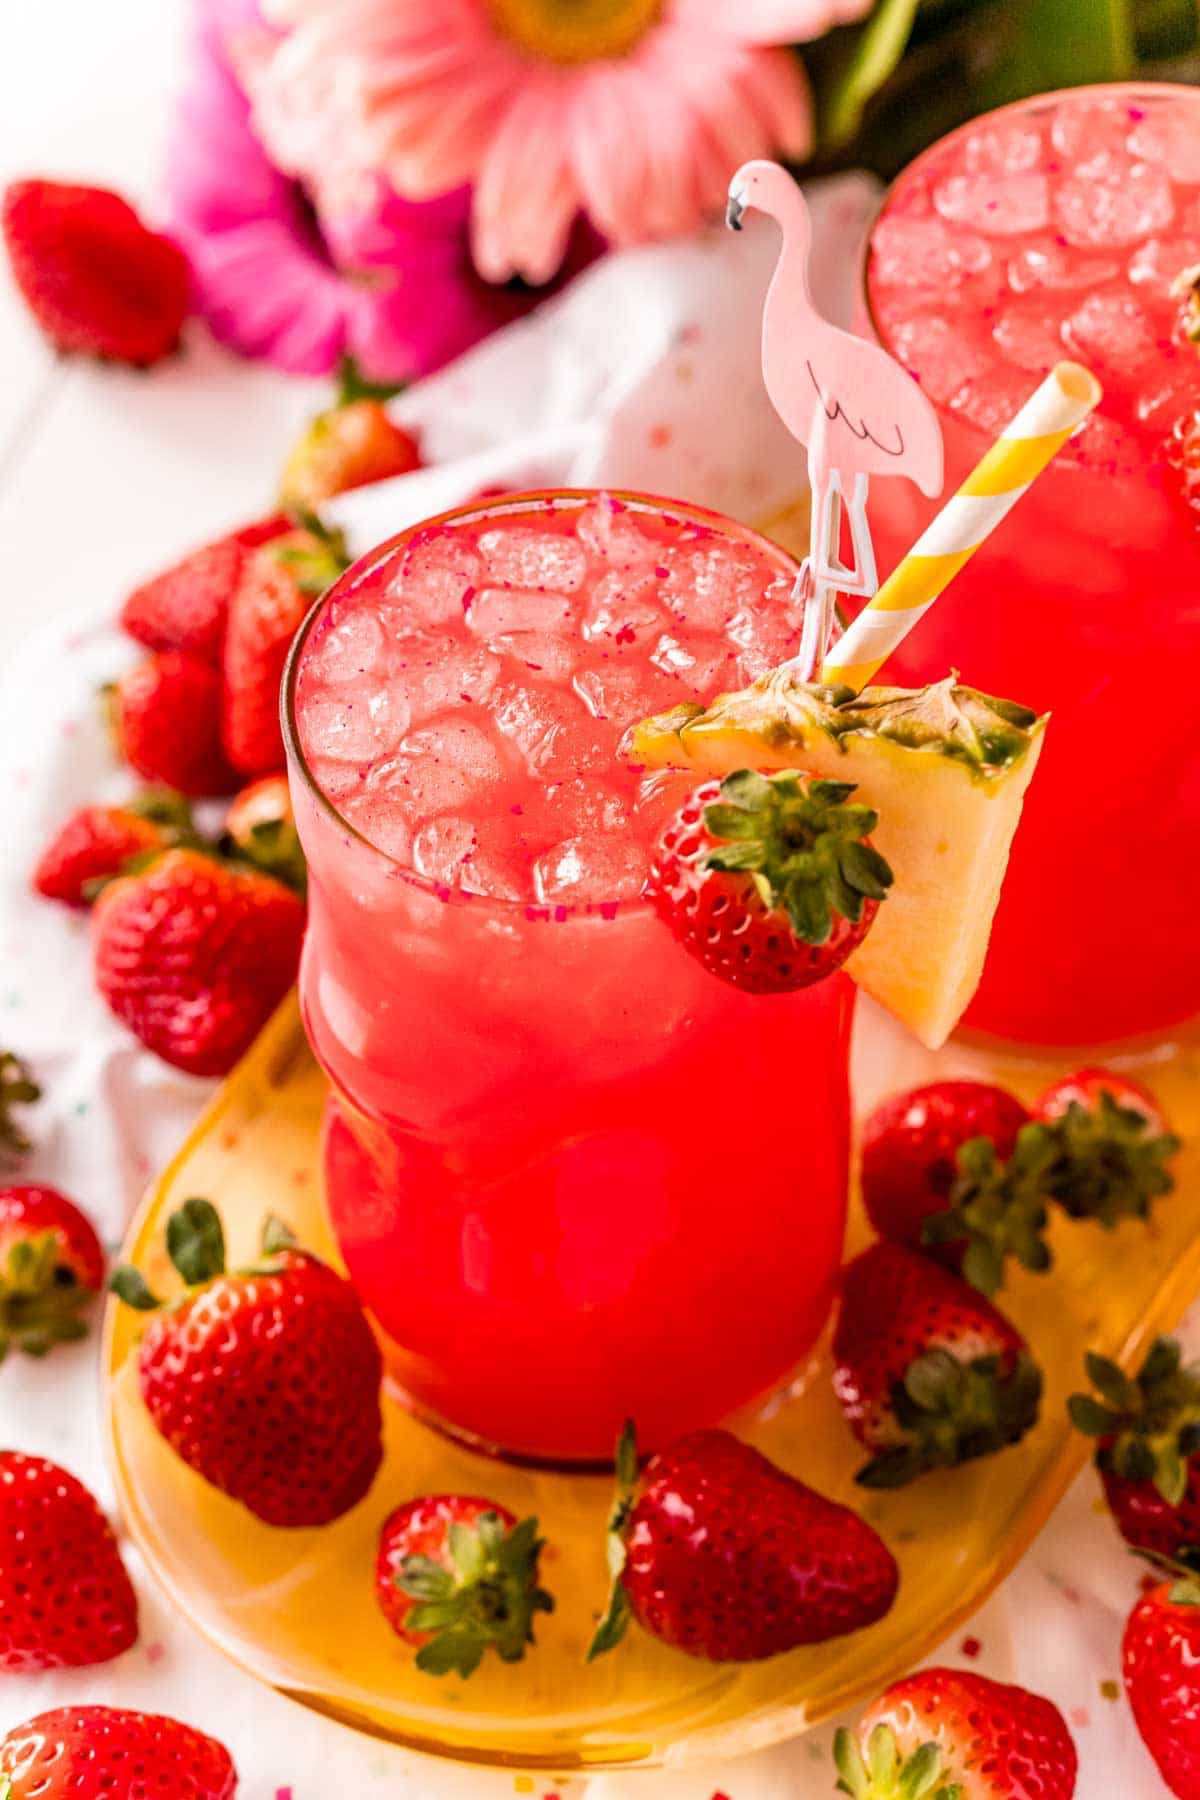 Red cotton candy drink with ice and a pineapple wedge garnish